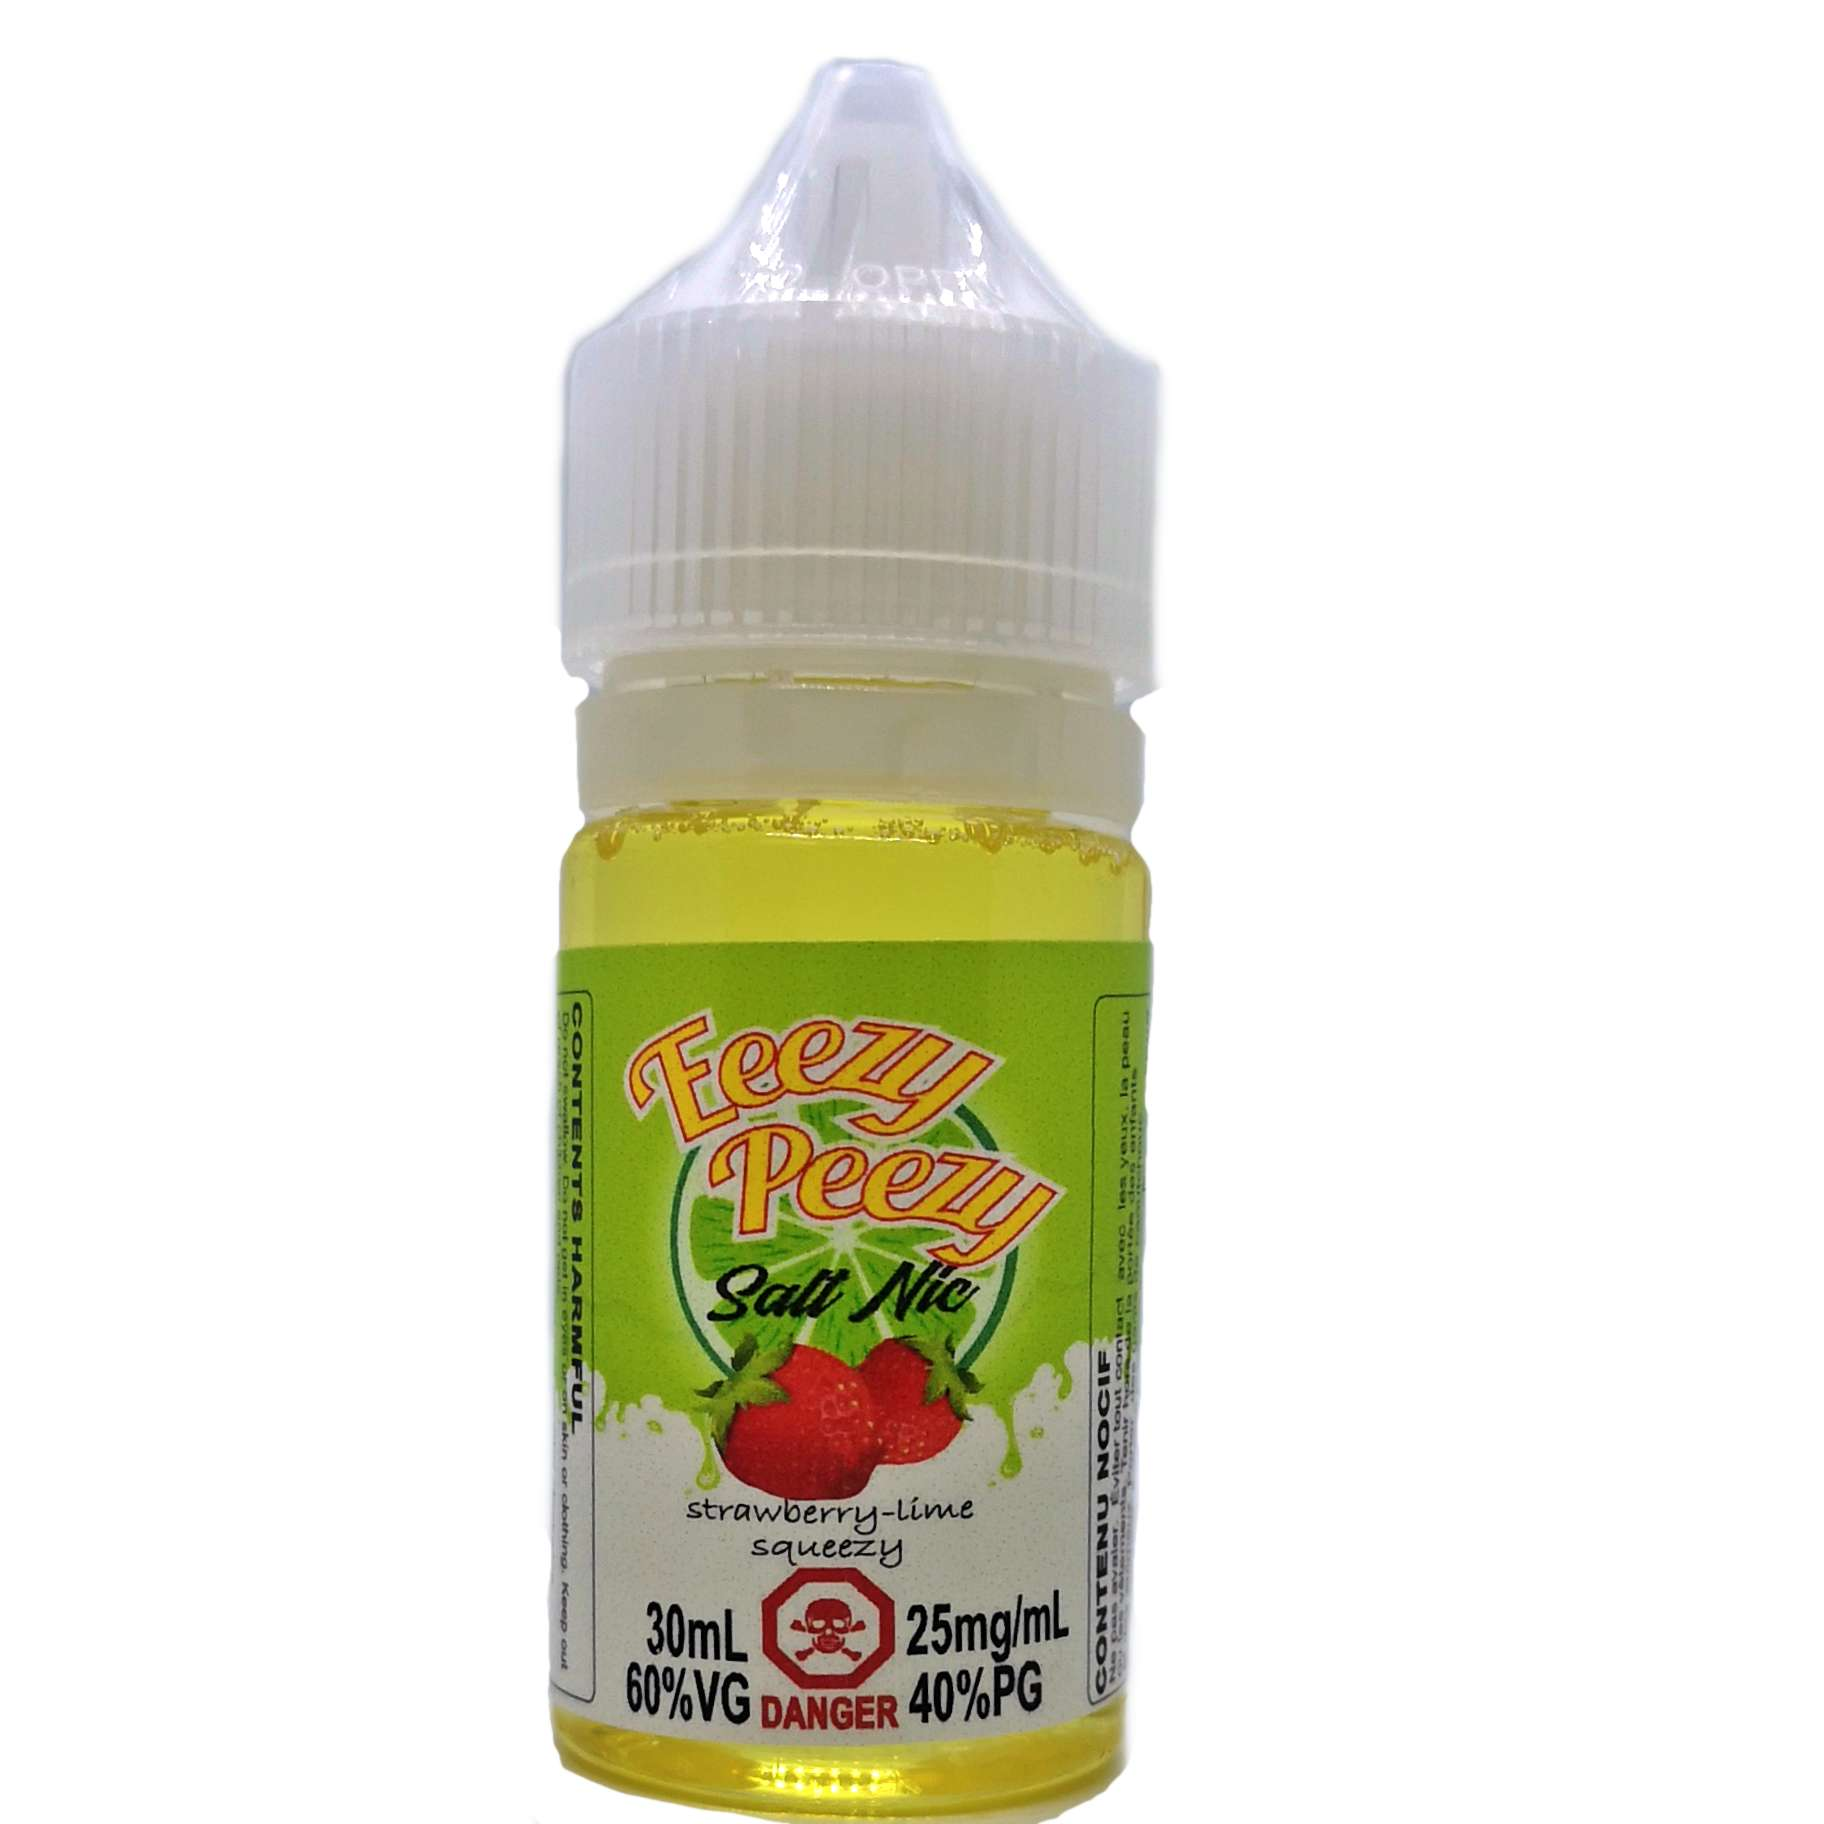 strawberry-lime squeezy